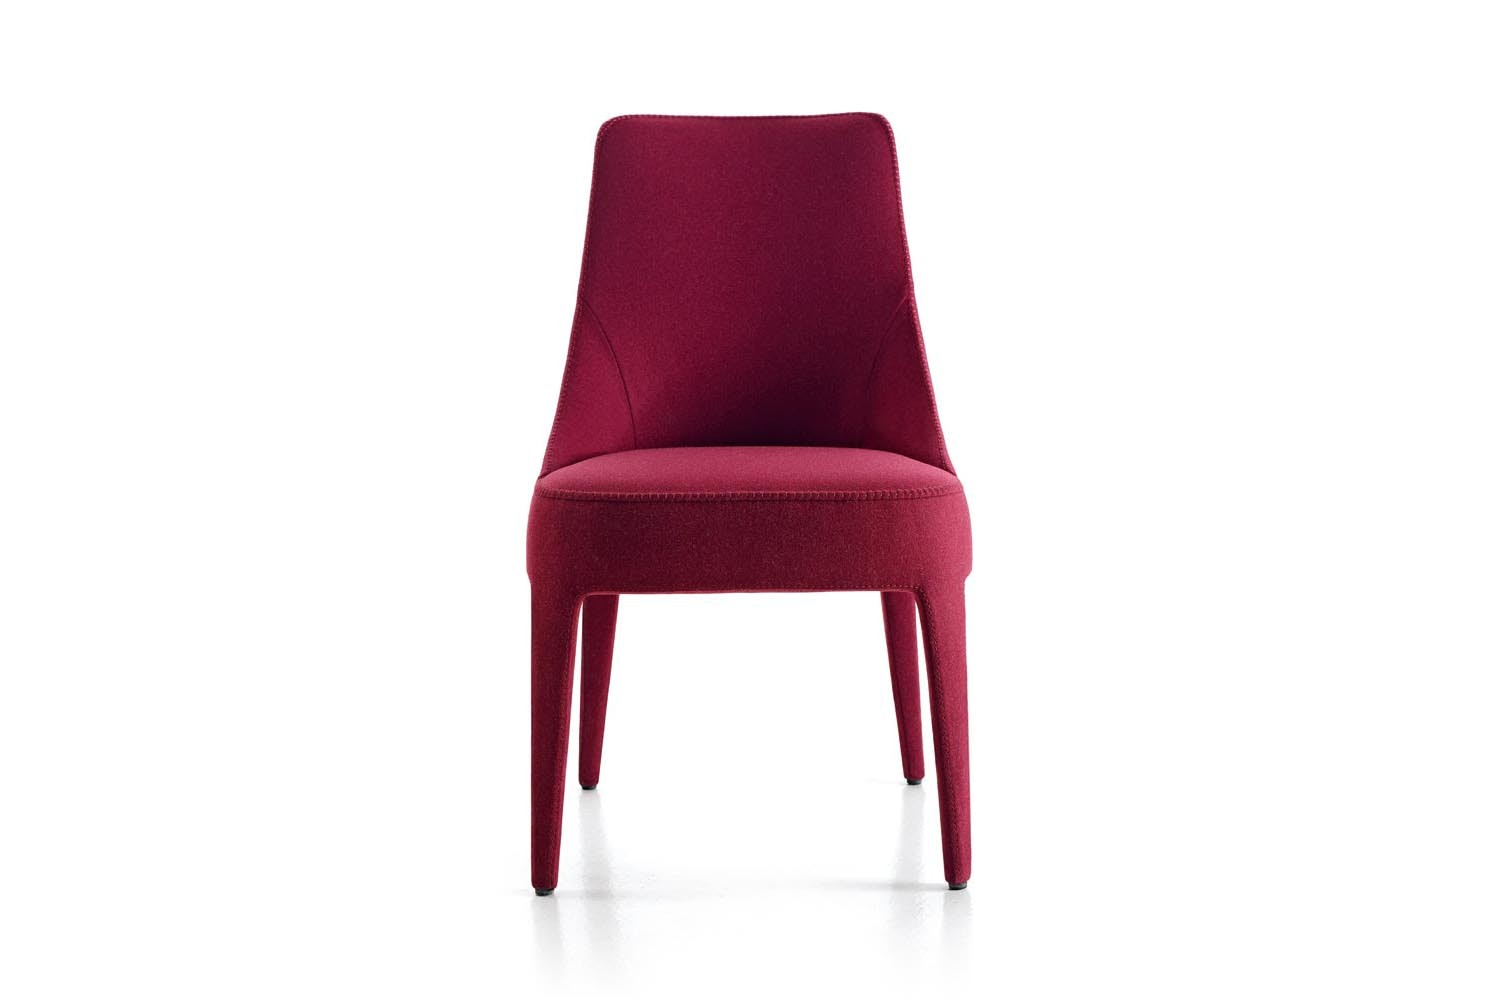 Febo Chair by Antonio Citterio for Maxalto